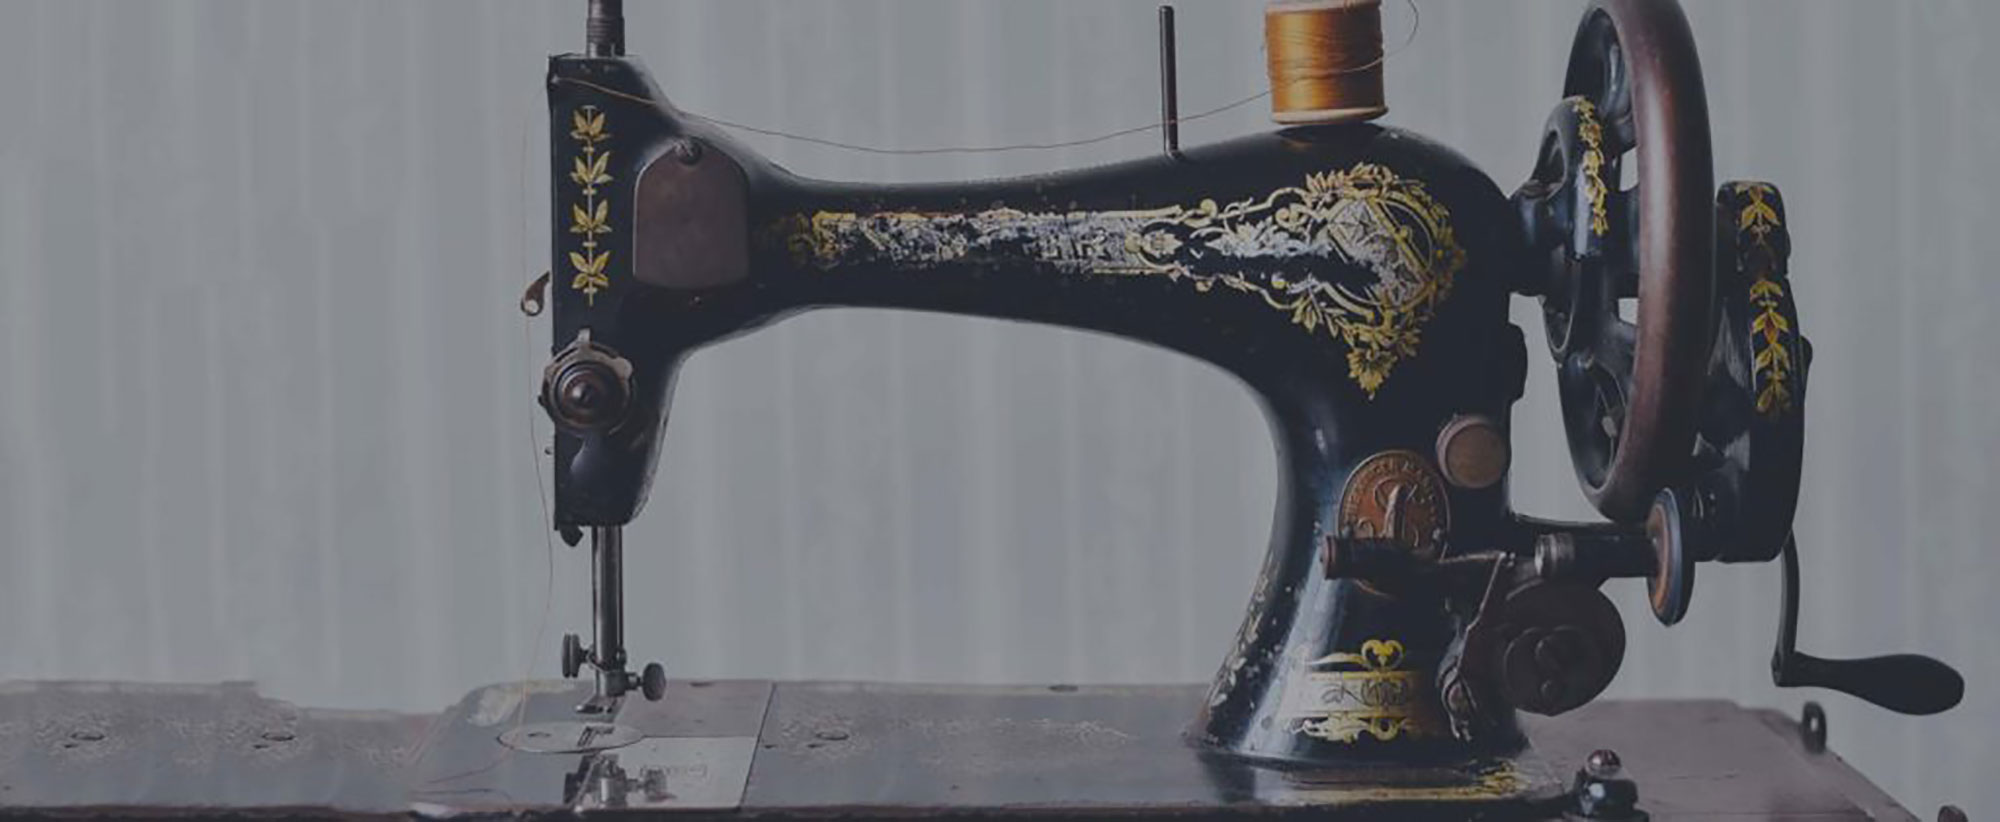 include-u sewing machine